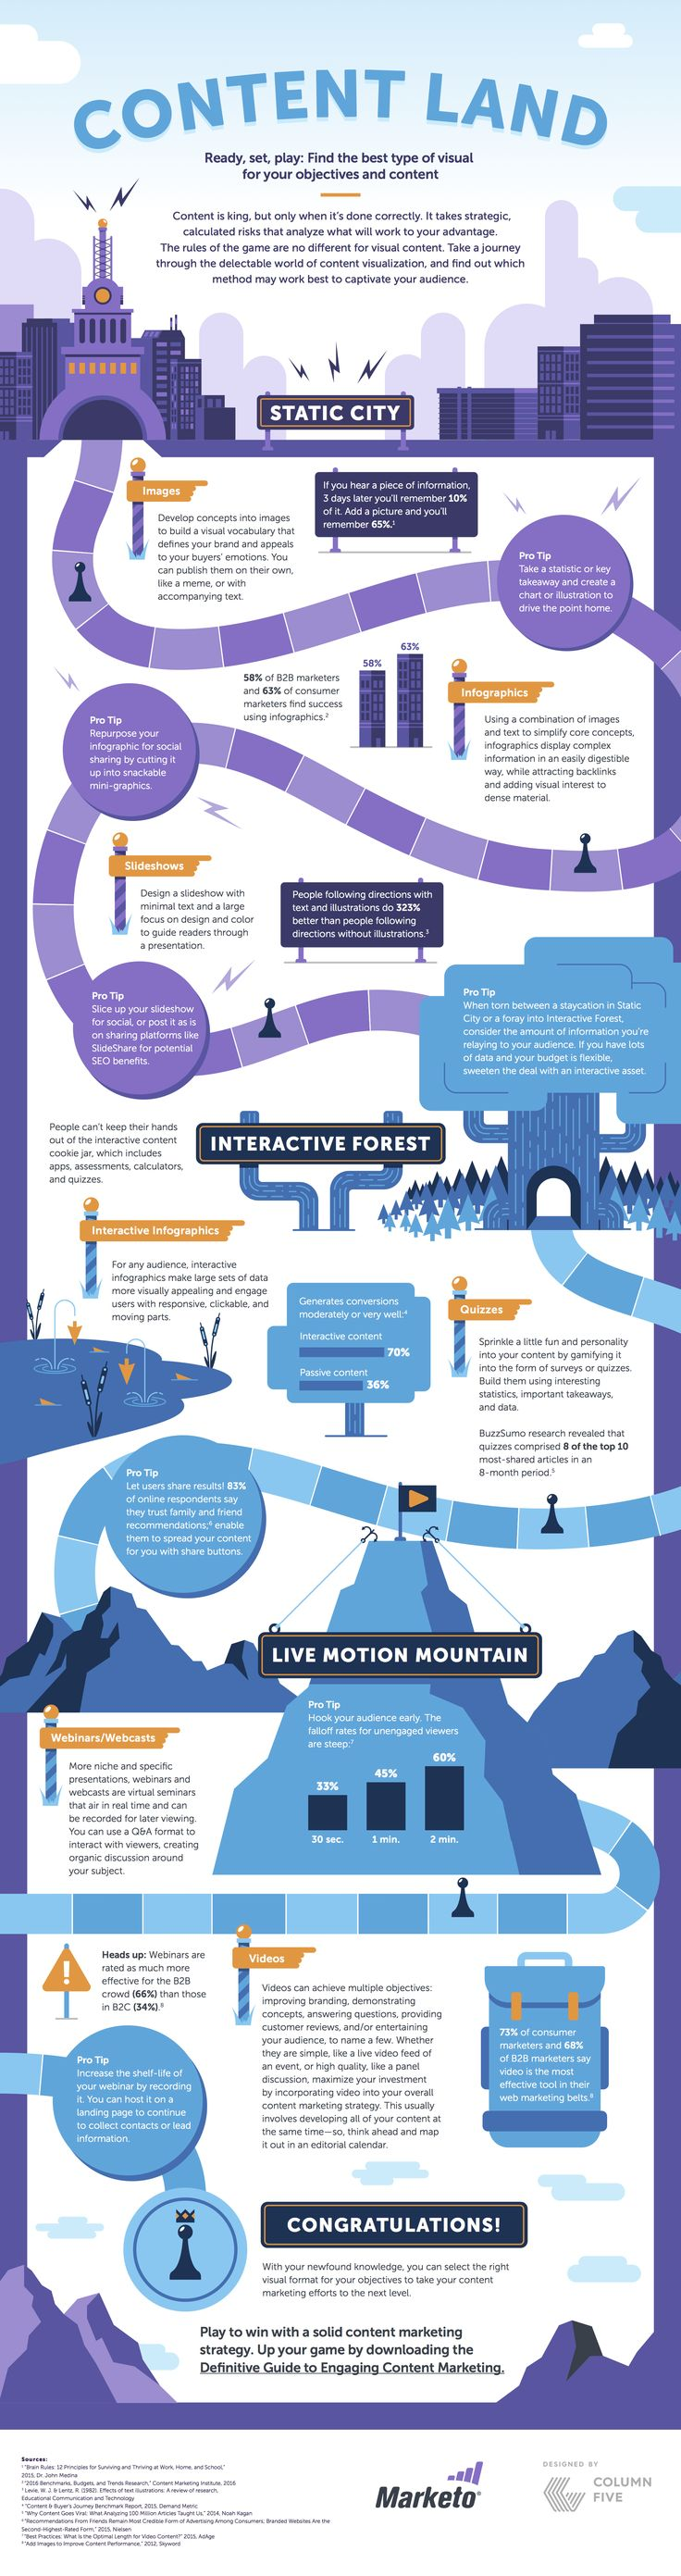 Journey through the world of #VisualContent | an Infographic from @_elaineip  for @marketo  | #Storytelling | Content Land: Find the Best Type of Visual for Your Objectives and Content